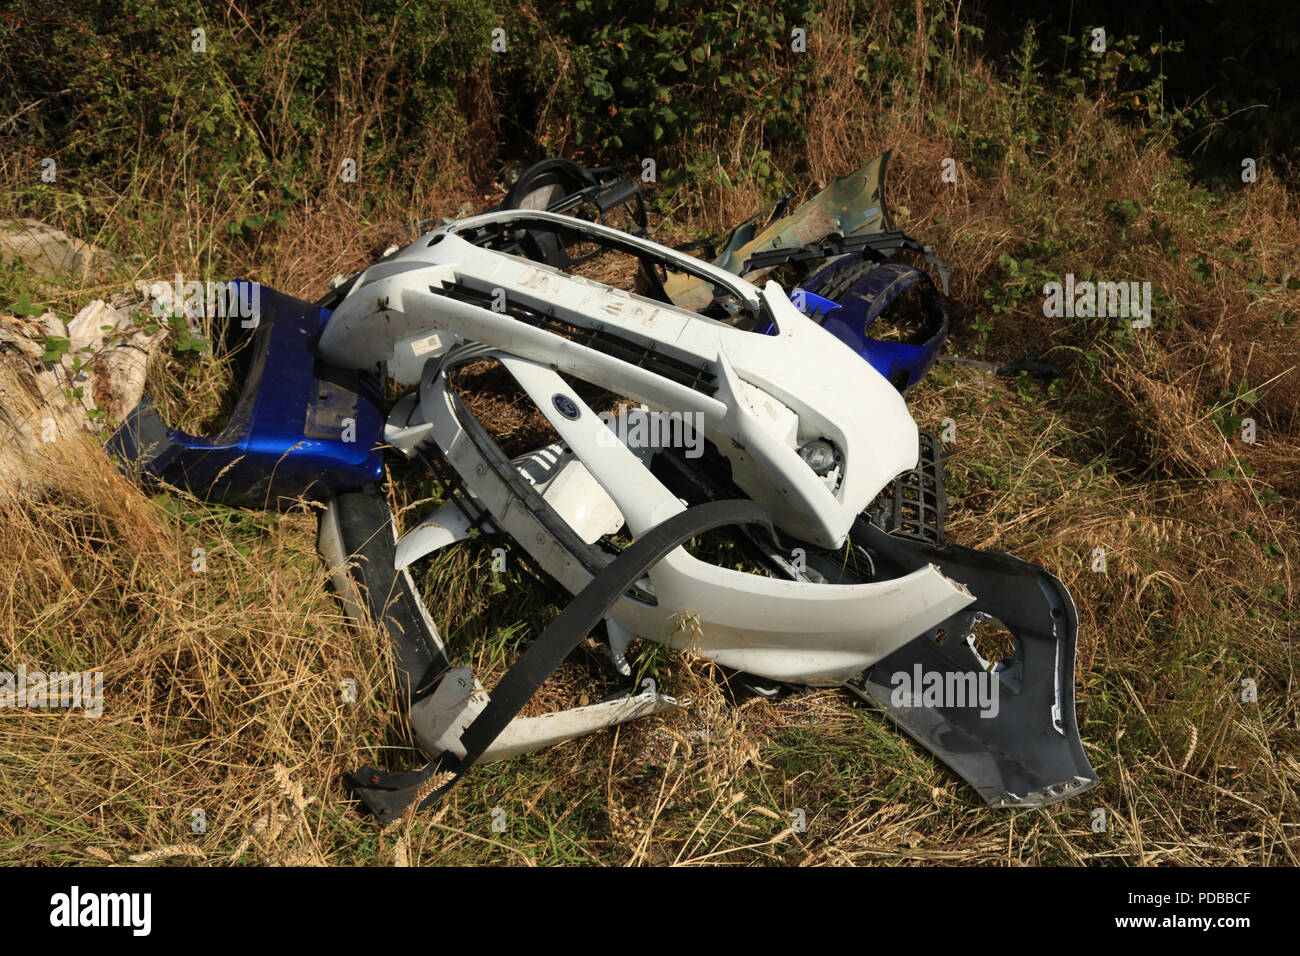 Dumped plastic car parts on farmland in the West midlands, UK. Stock Photo